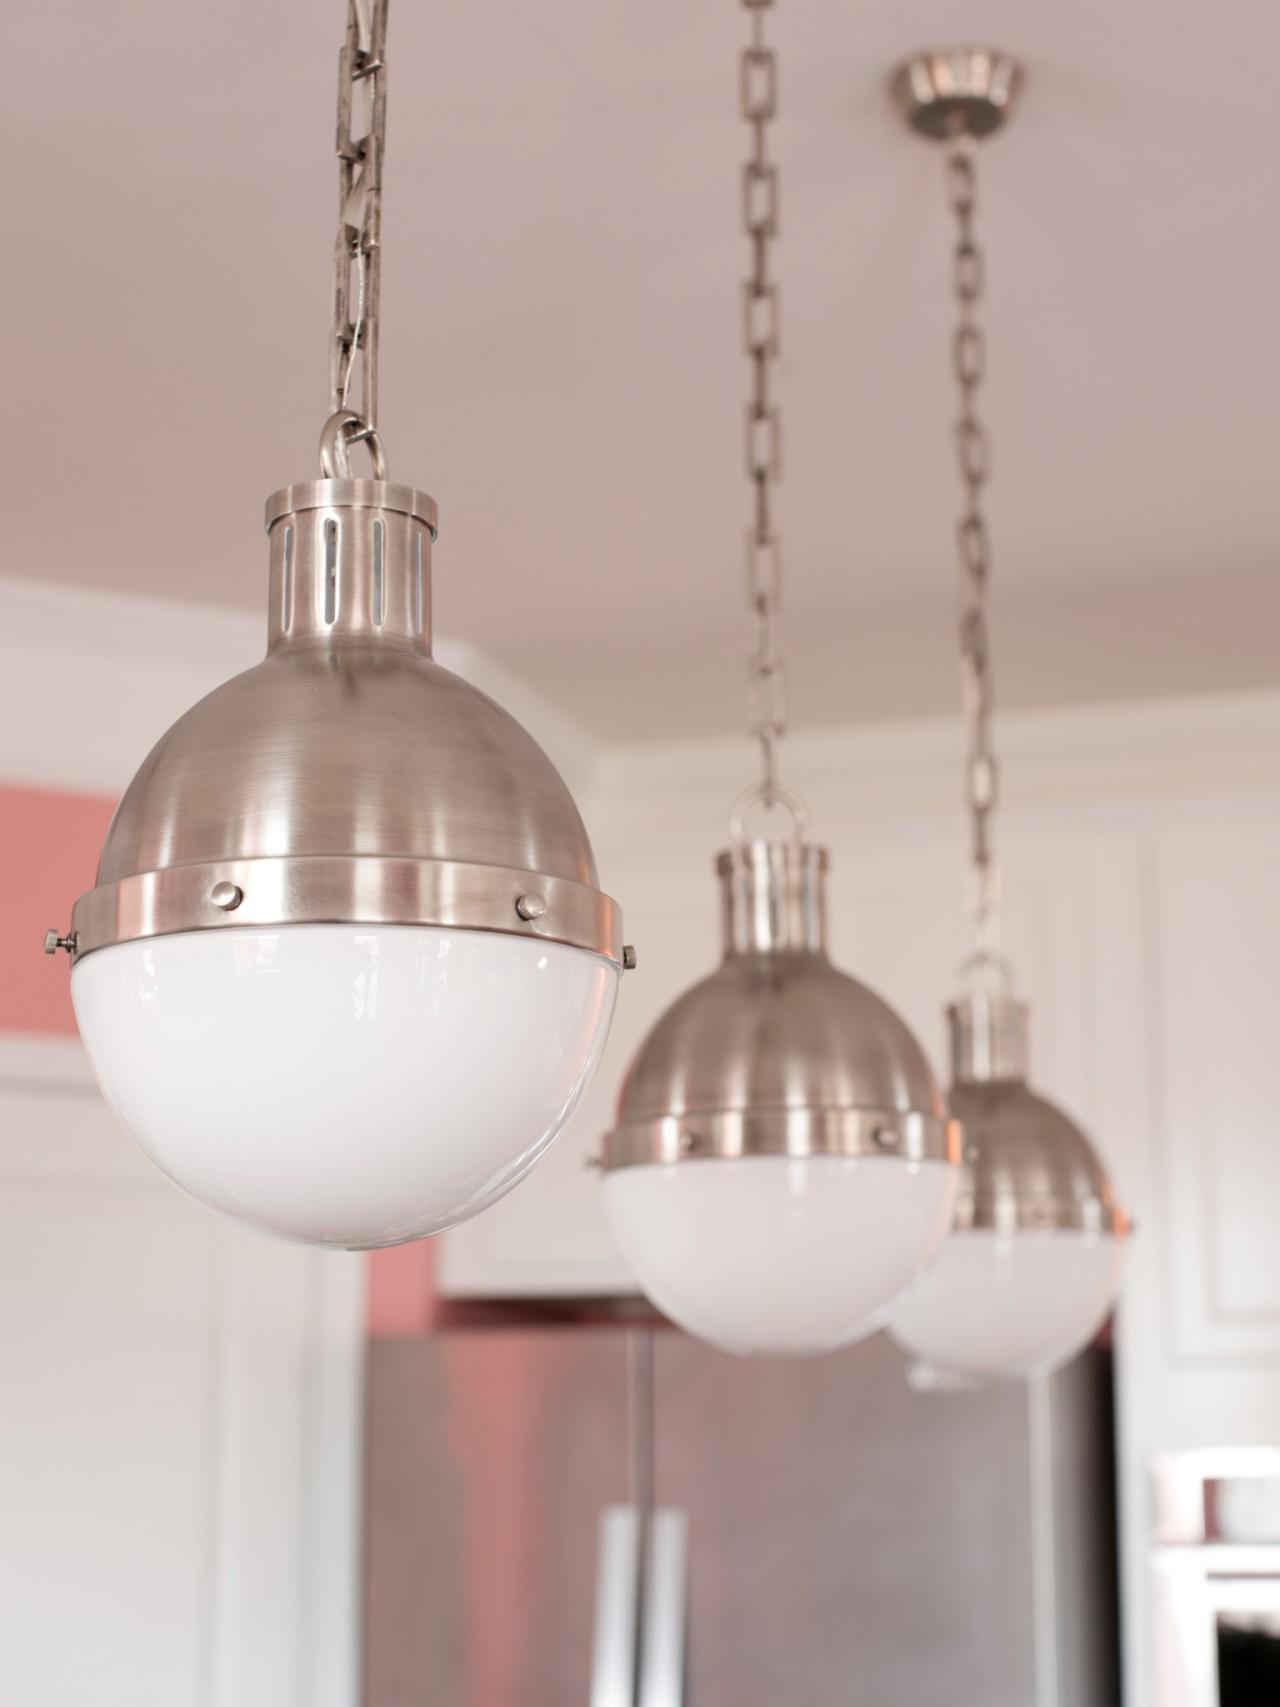 Installing Pendant Lights Kitchen Island Photo Page | Hgtv